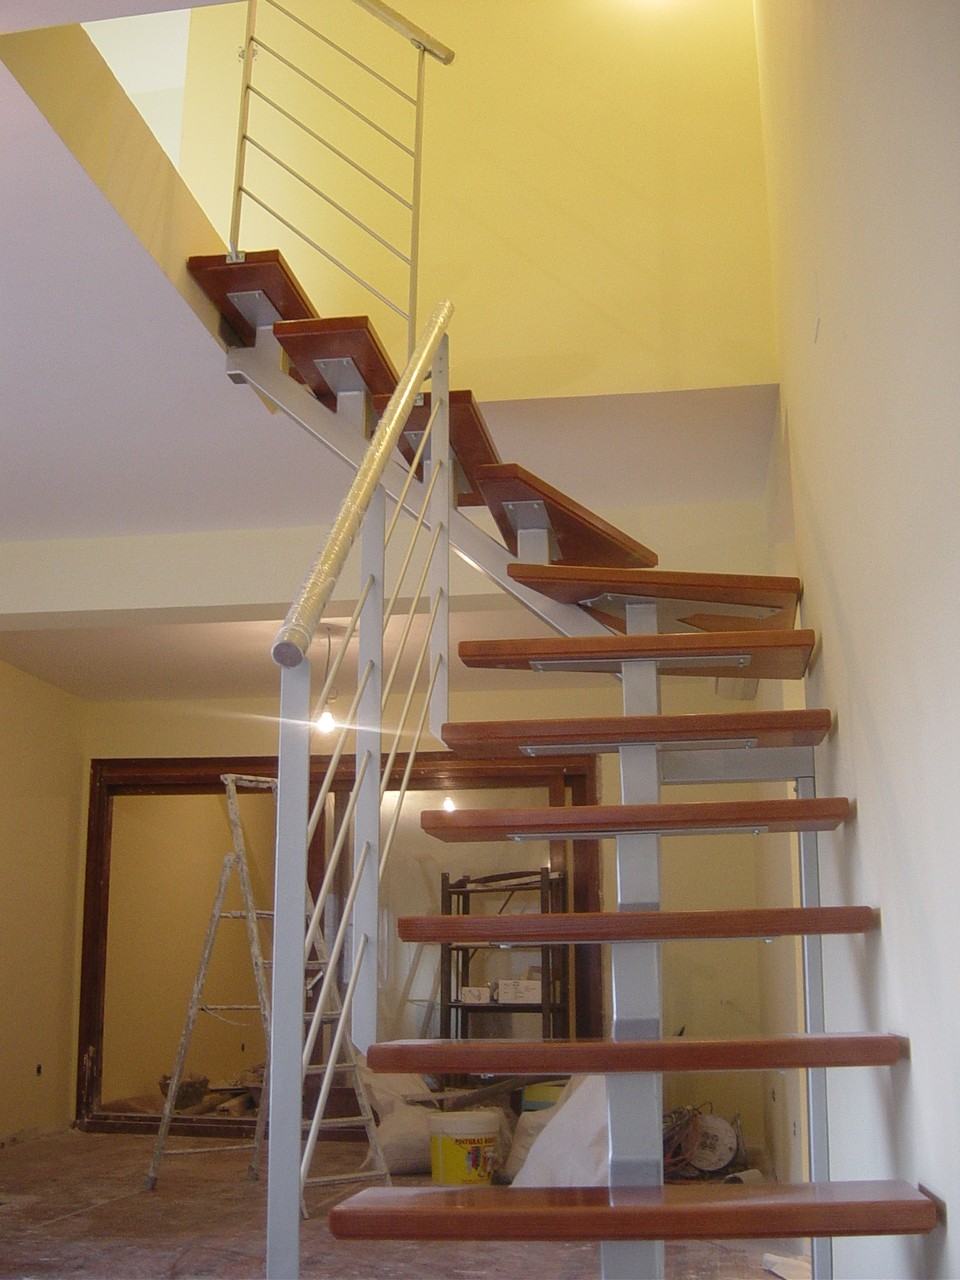 Dise o exclusivos en madera escaleras en madera for Escaleras metalicas homecenter